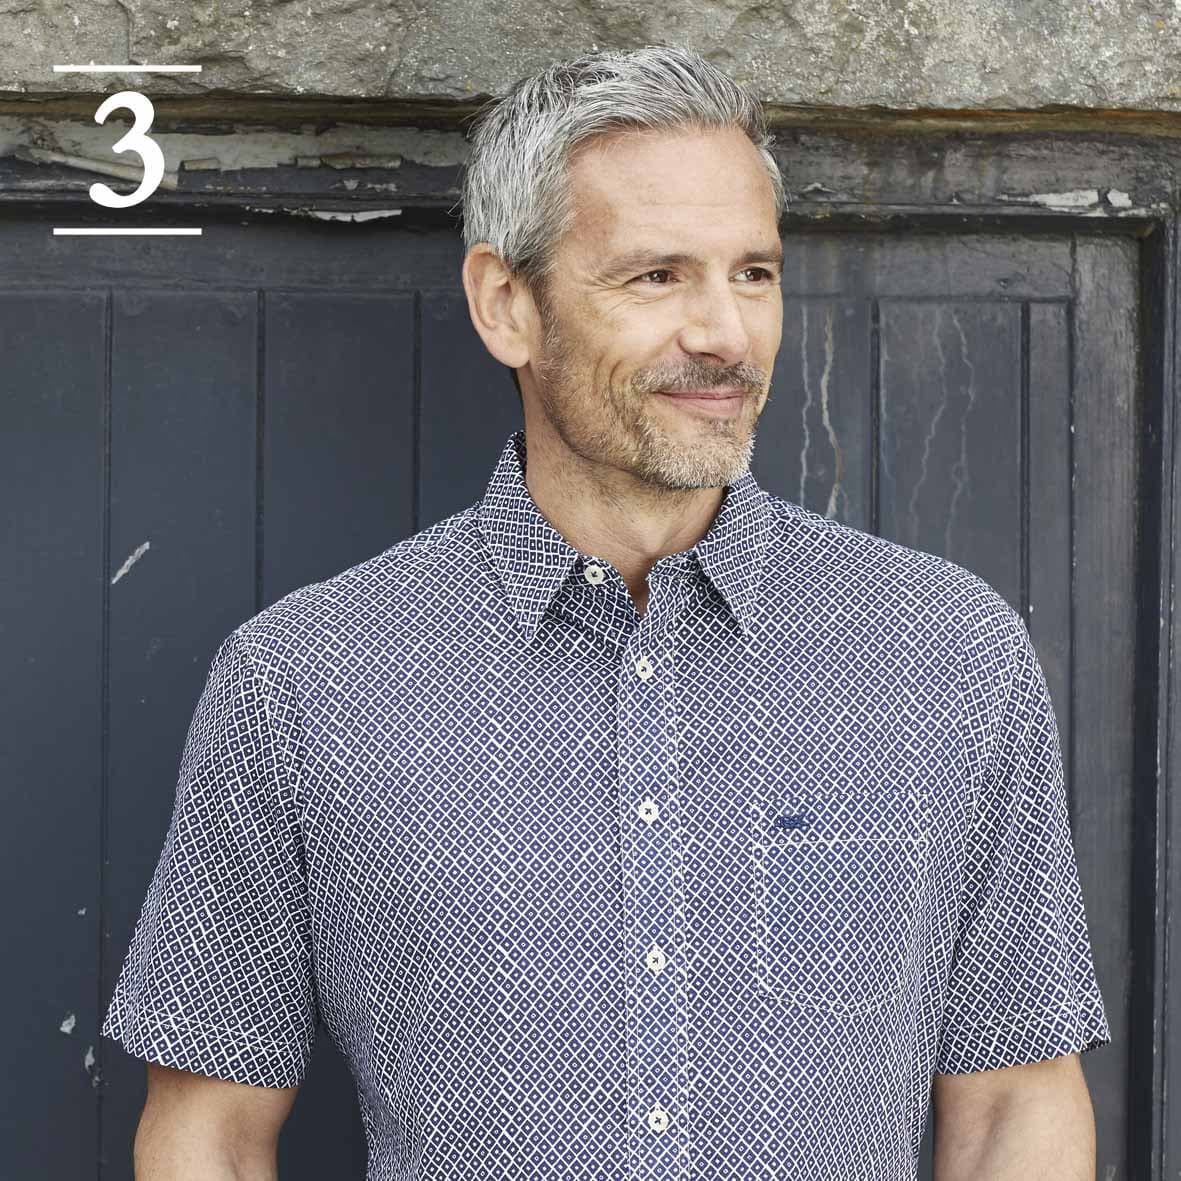 Navy Patterned Short Sleeve Casual Shirt